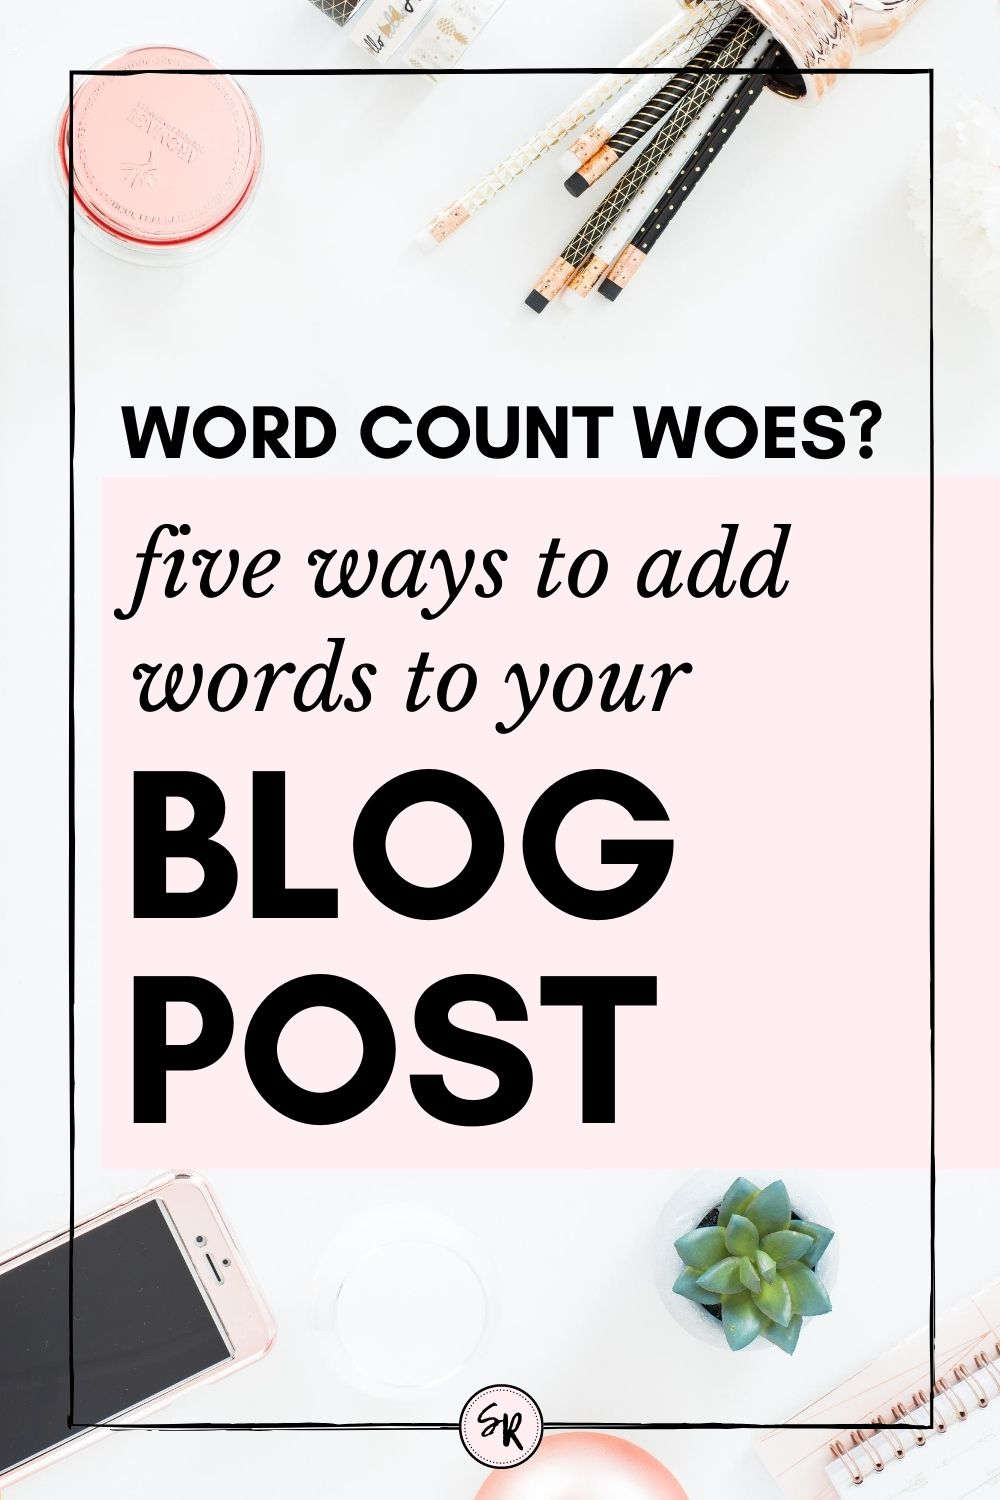 5 Easy Ways To Add Words To Your Blog Post